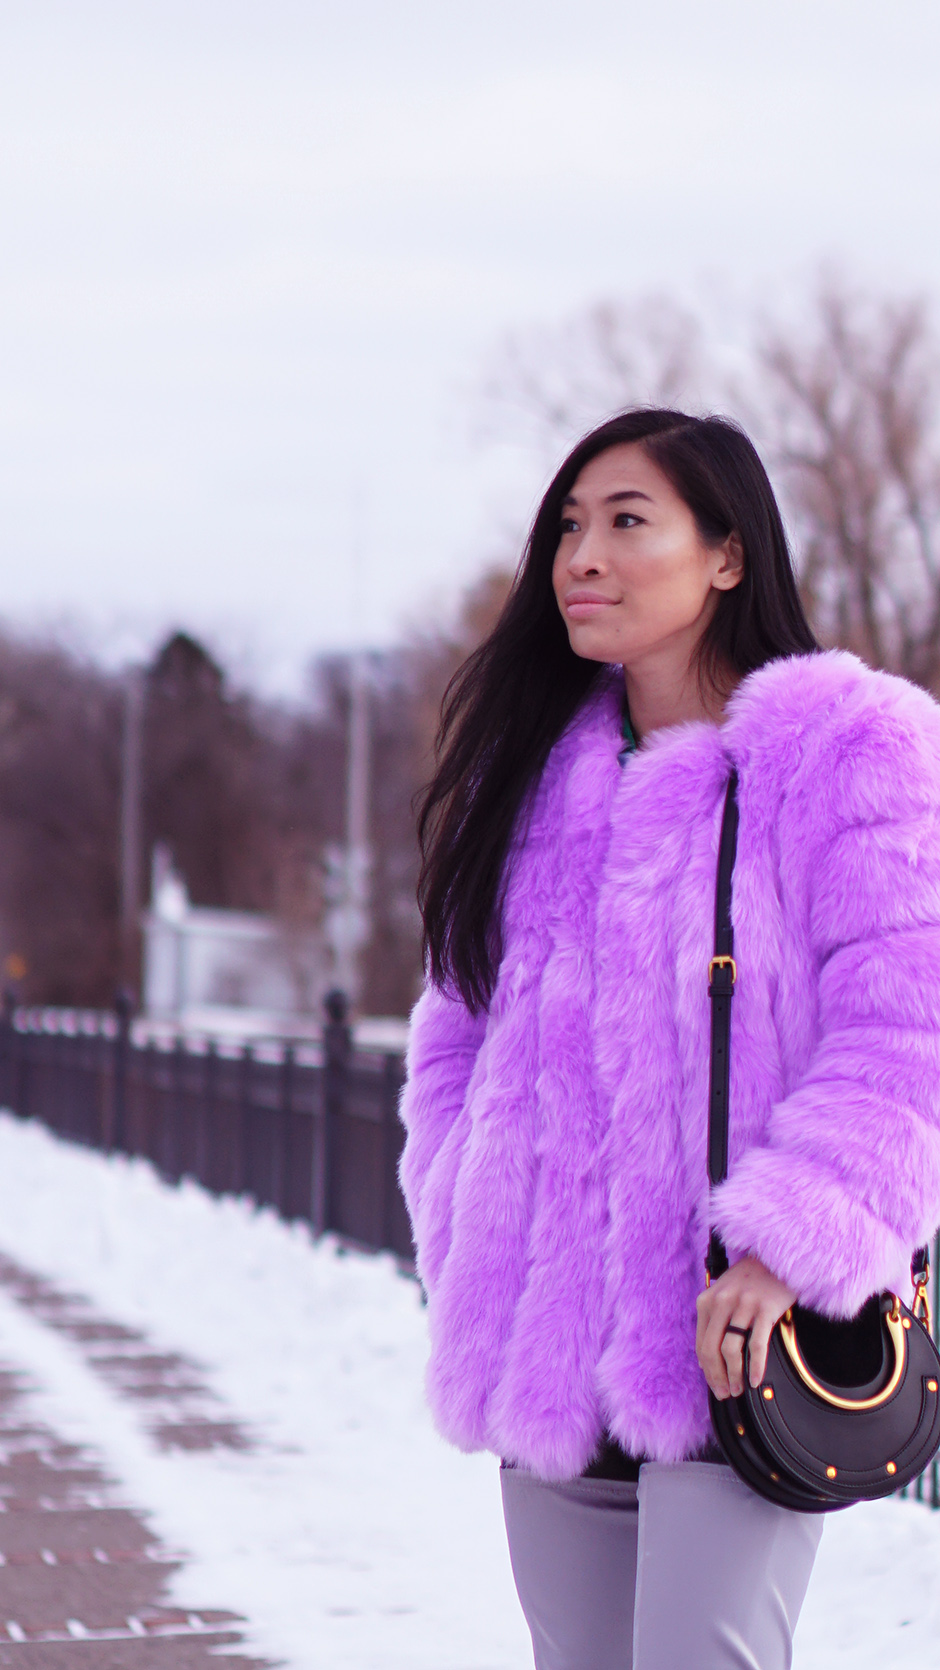 Purple Colored Faux Fur Coat - Tips on Increasing Quality of Life - #fashionblog #streetstyle #winteroutfit #winterlayering #wintercoat #fashiontrends #winterfashion #outfitinspiration #colorfulcoat #fauxfur #thighboots #chanelbeauty #chloeinspired